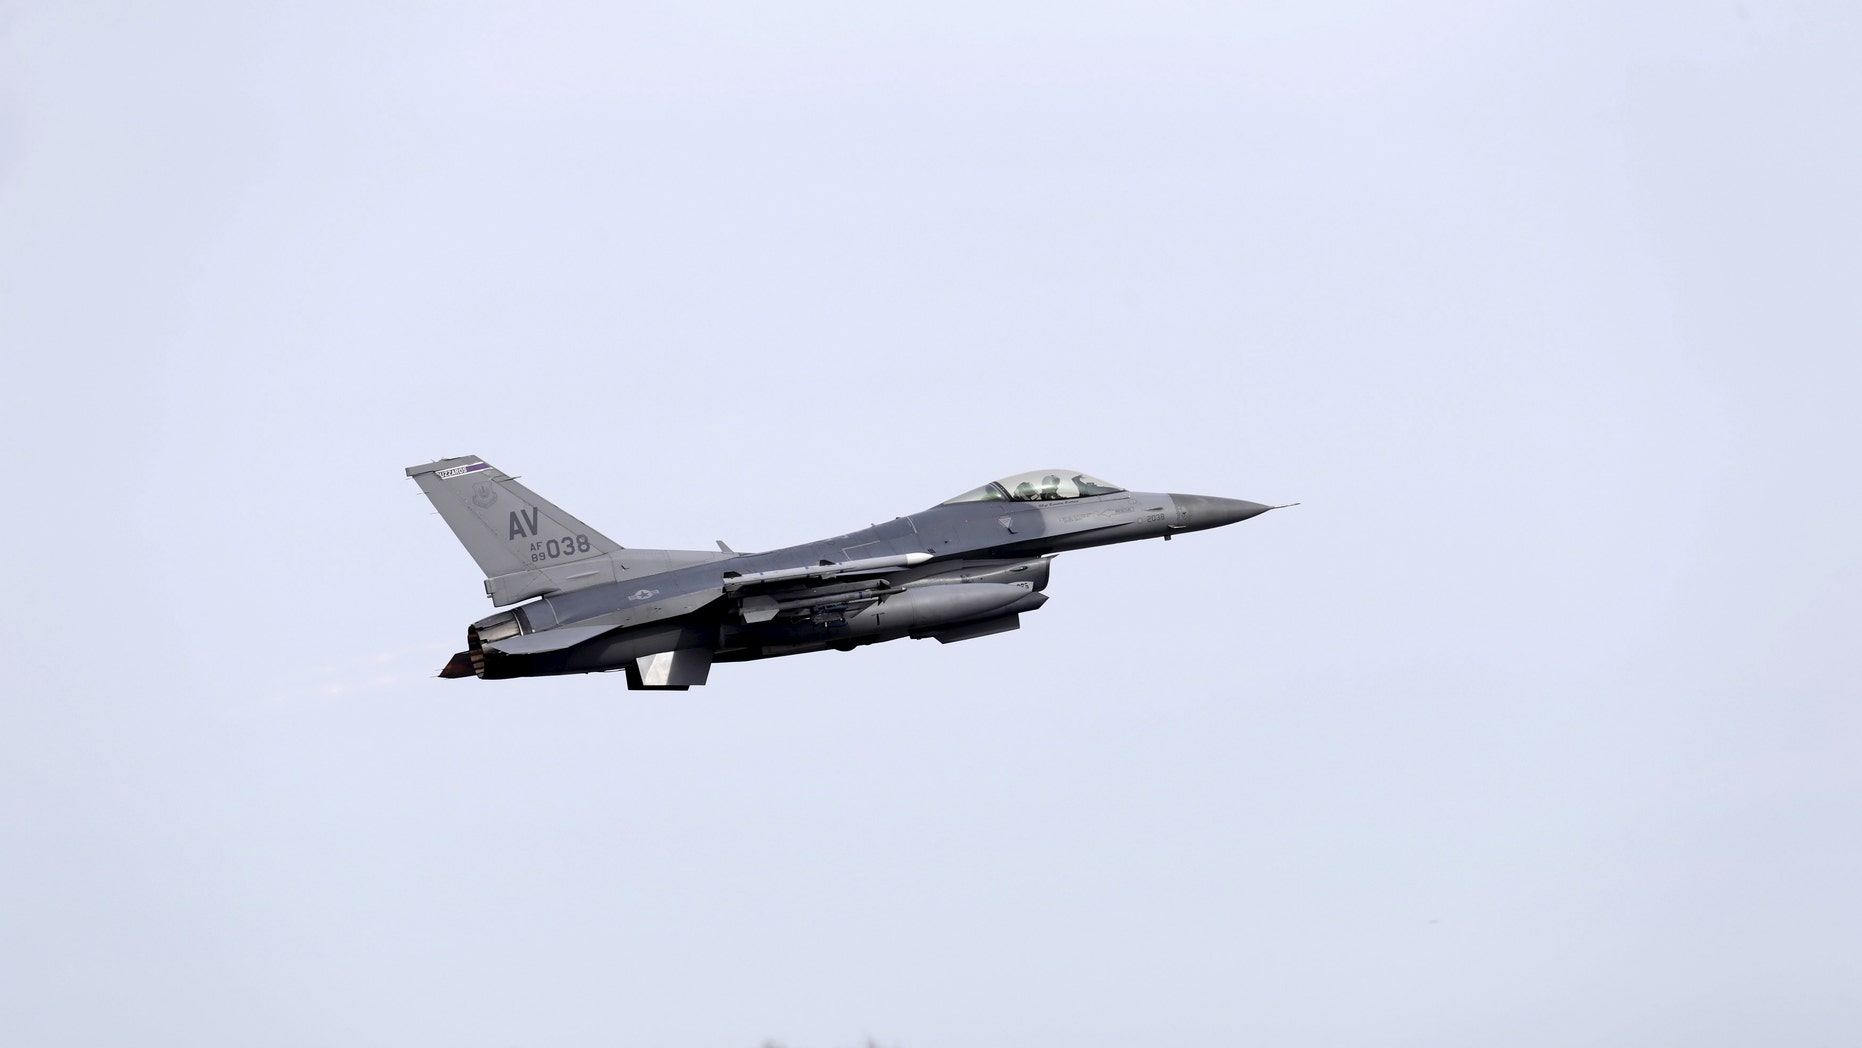 File photo - An F-16 fighter from the U.S. Air Force 510th Fighter Squadron takes-off in Amari air base March 26, 2015.